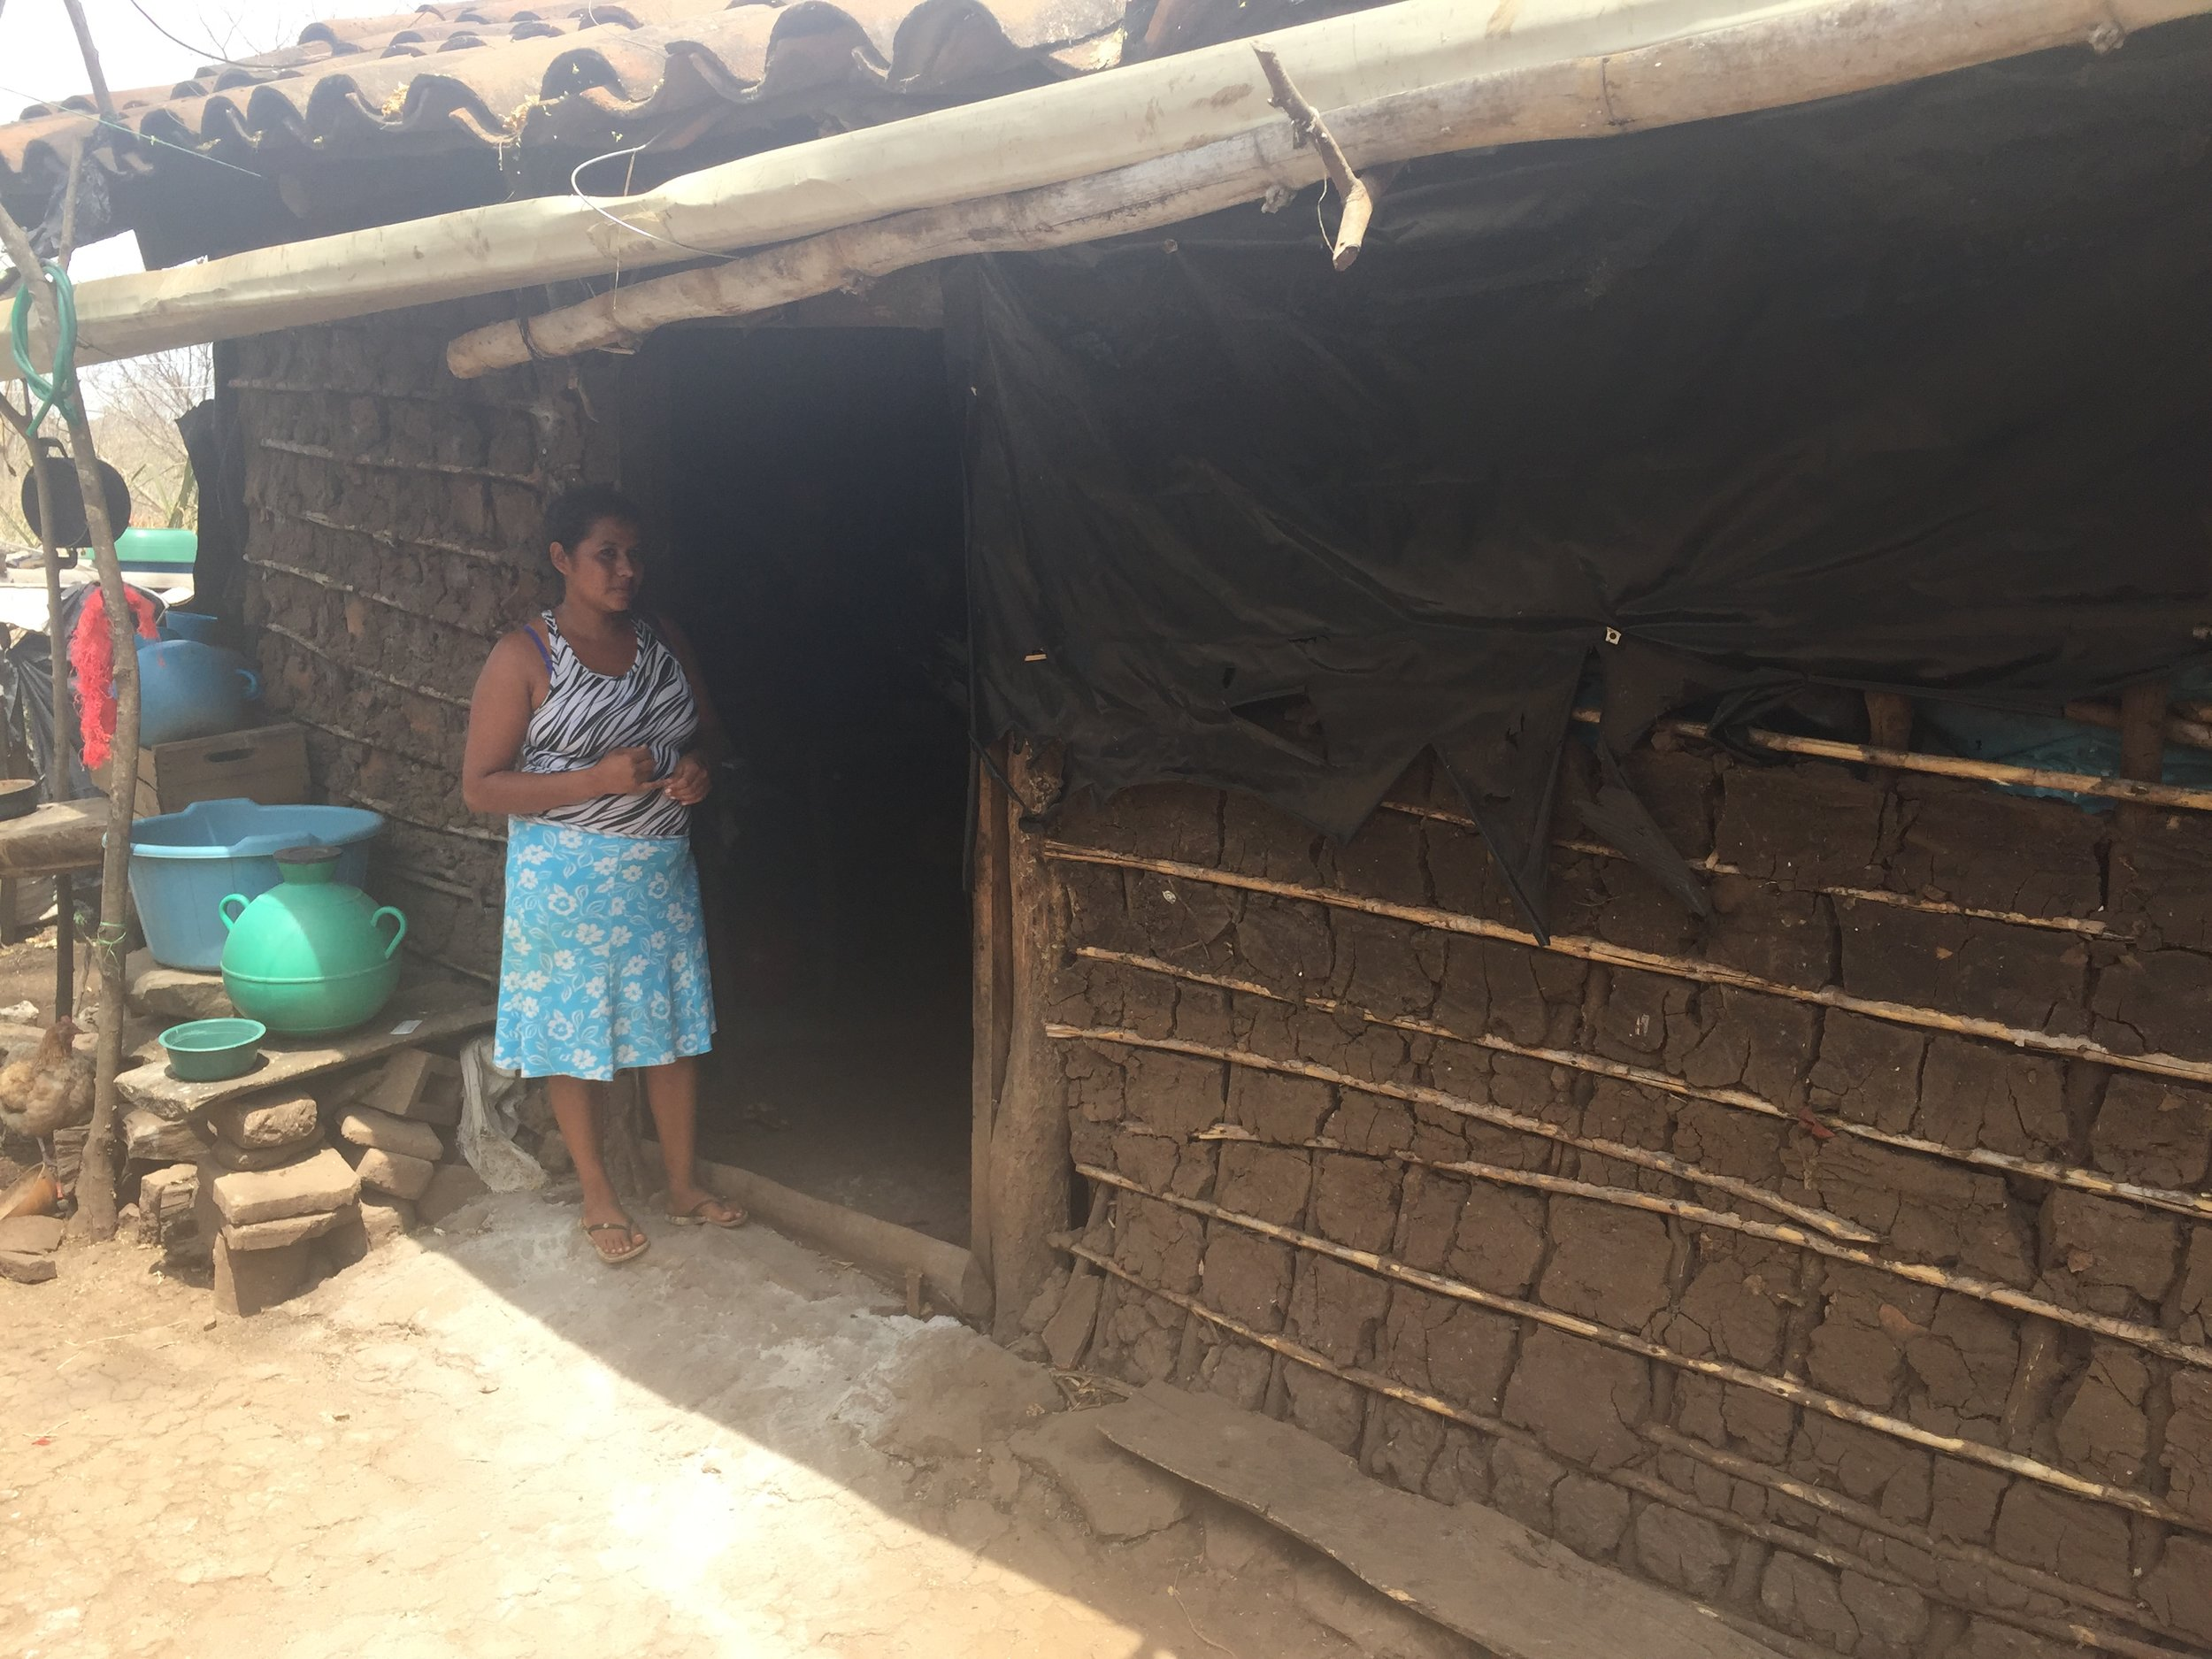 A woman waits for her children outside her home, now improved by the plastic to keep the rain out. Her water and washing containers are just behind her, ready for their next trip to the river.